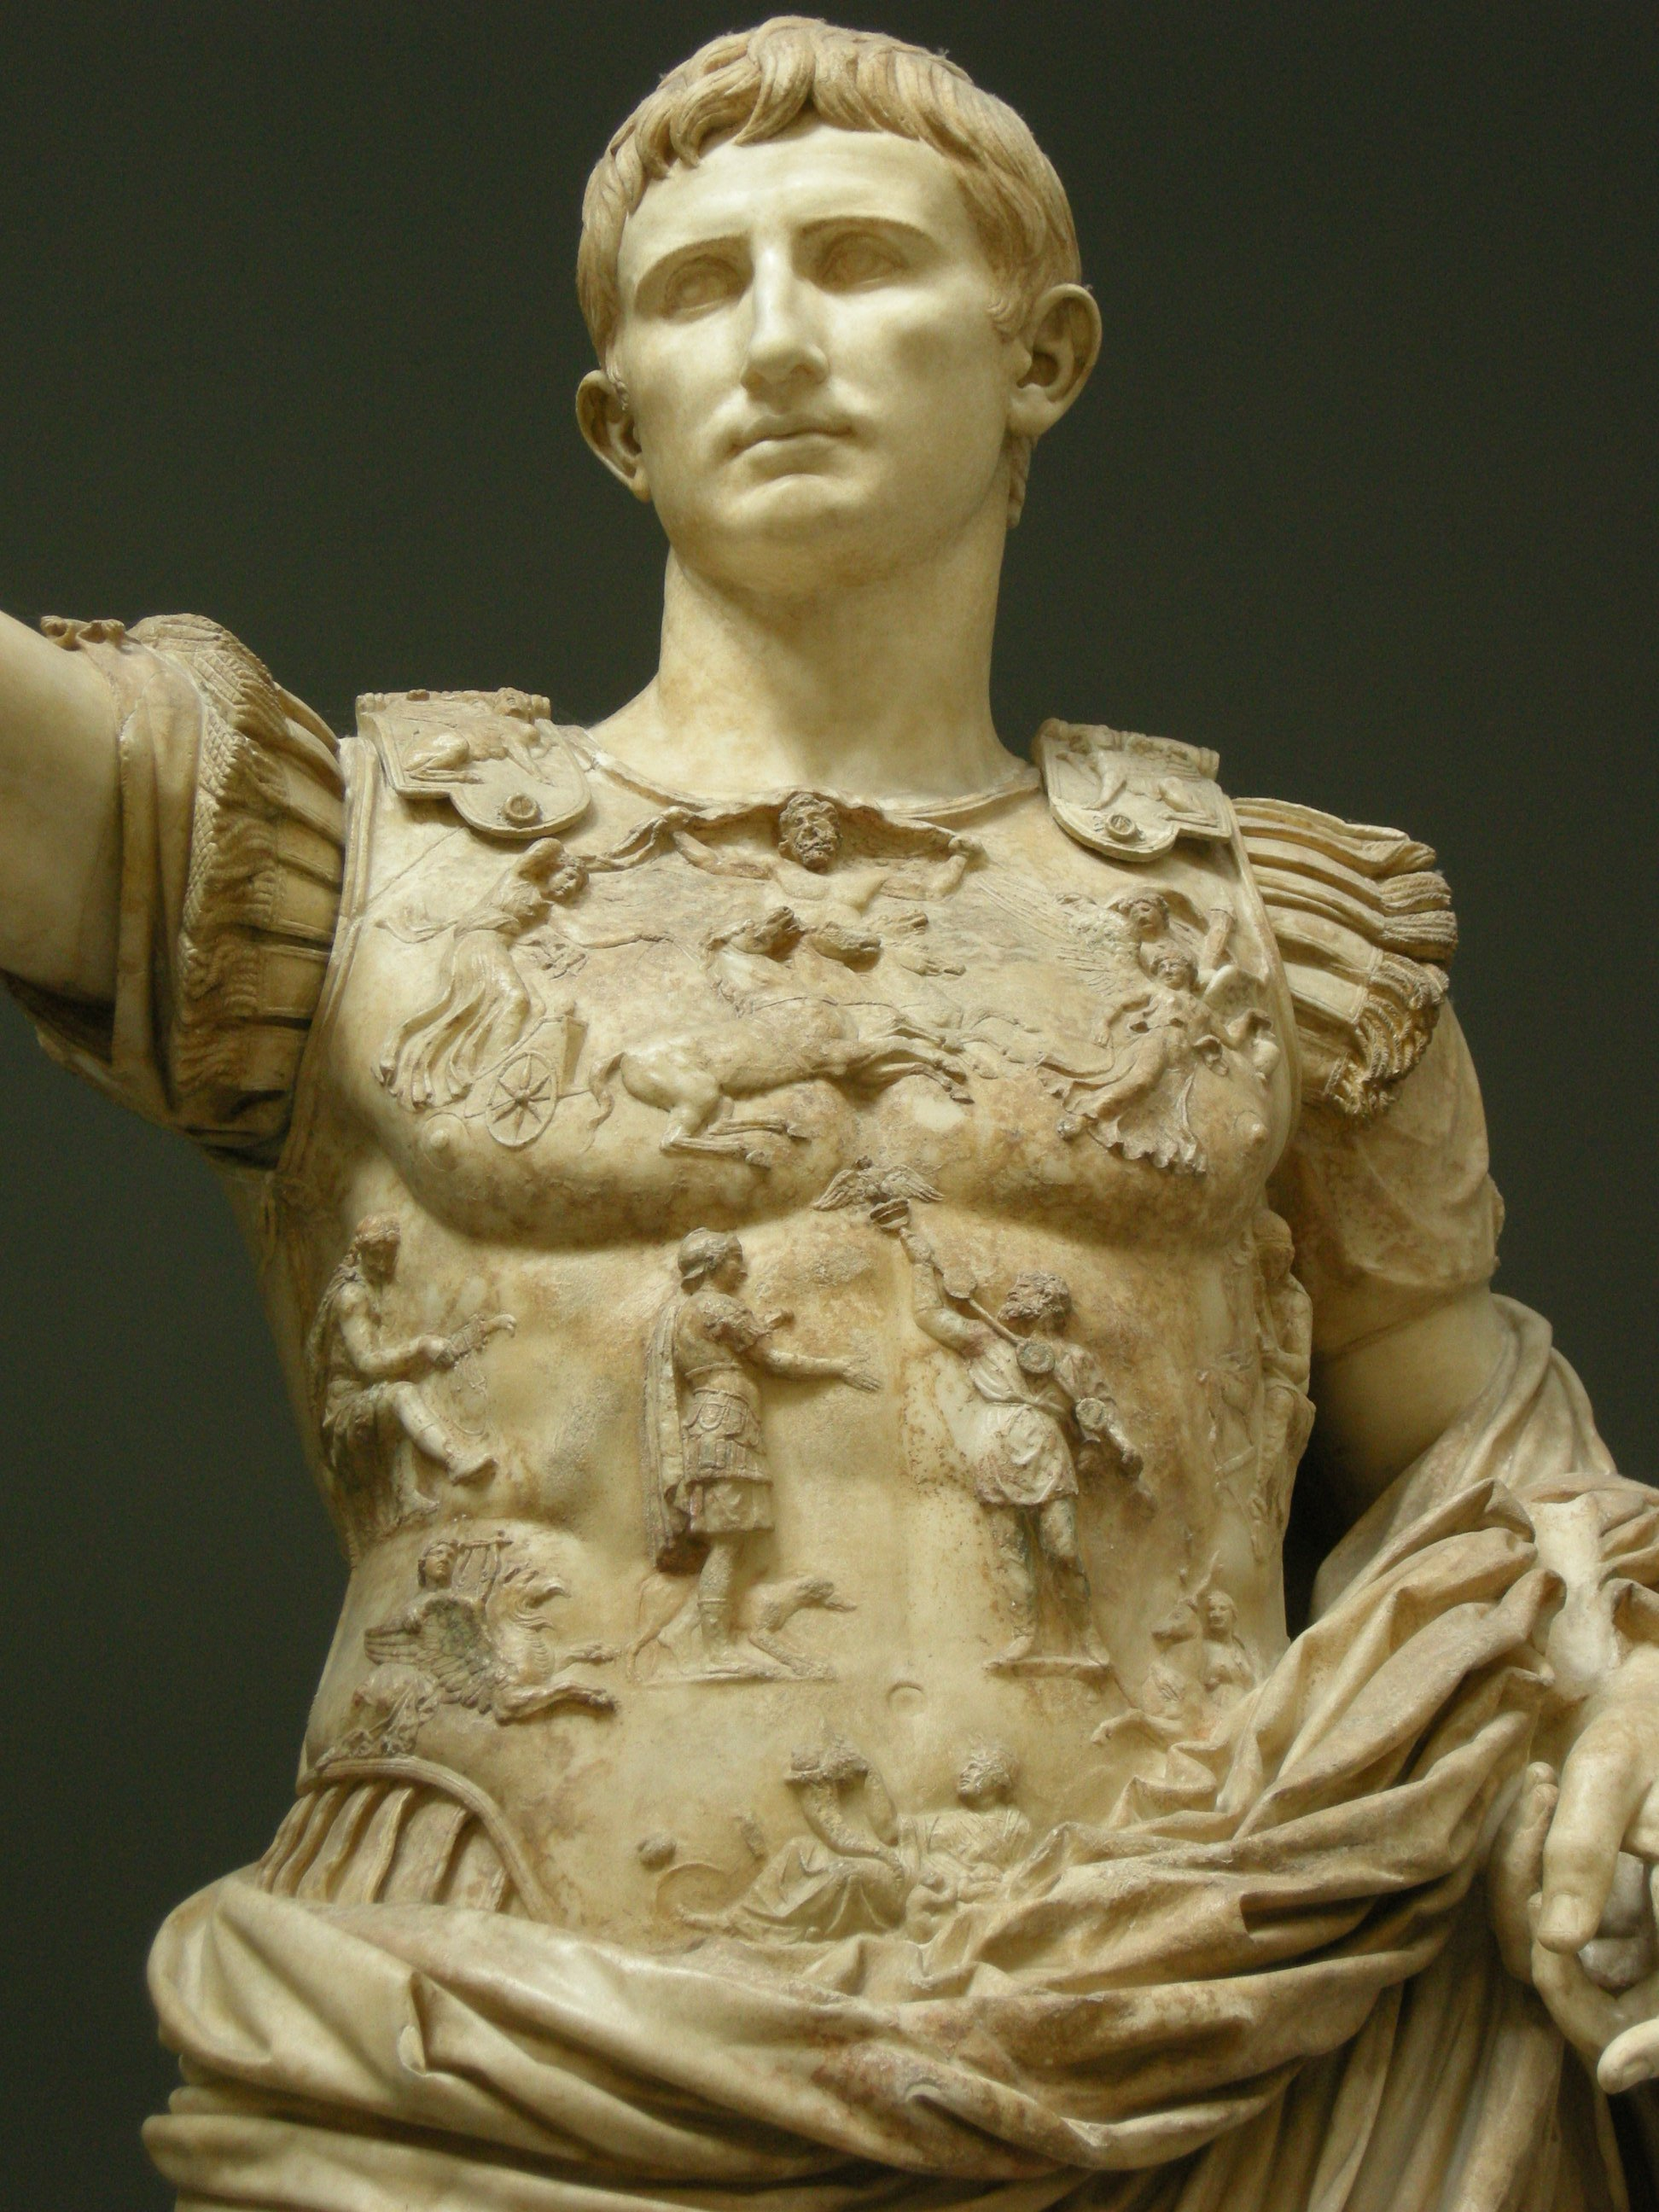 a biography of augustus caesar a good leader and contributor to the ancient roman empire Quizlet provides julius caesar people roman julius caesar, augustus, roman empire for life in 45 bce, after in ancient rome, a leader chosen by.